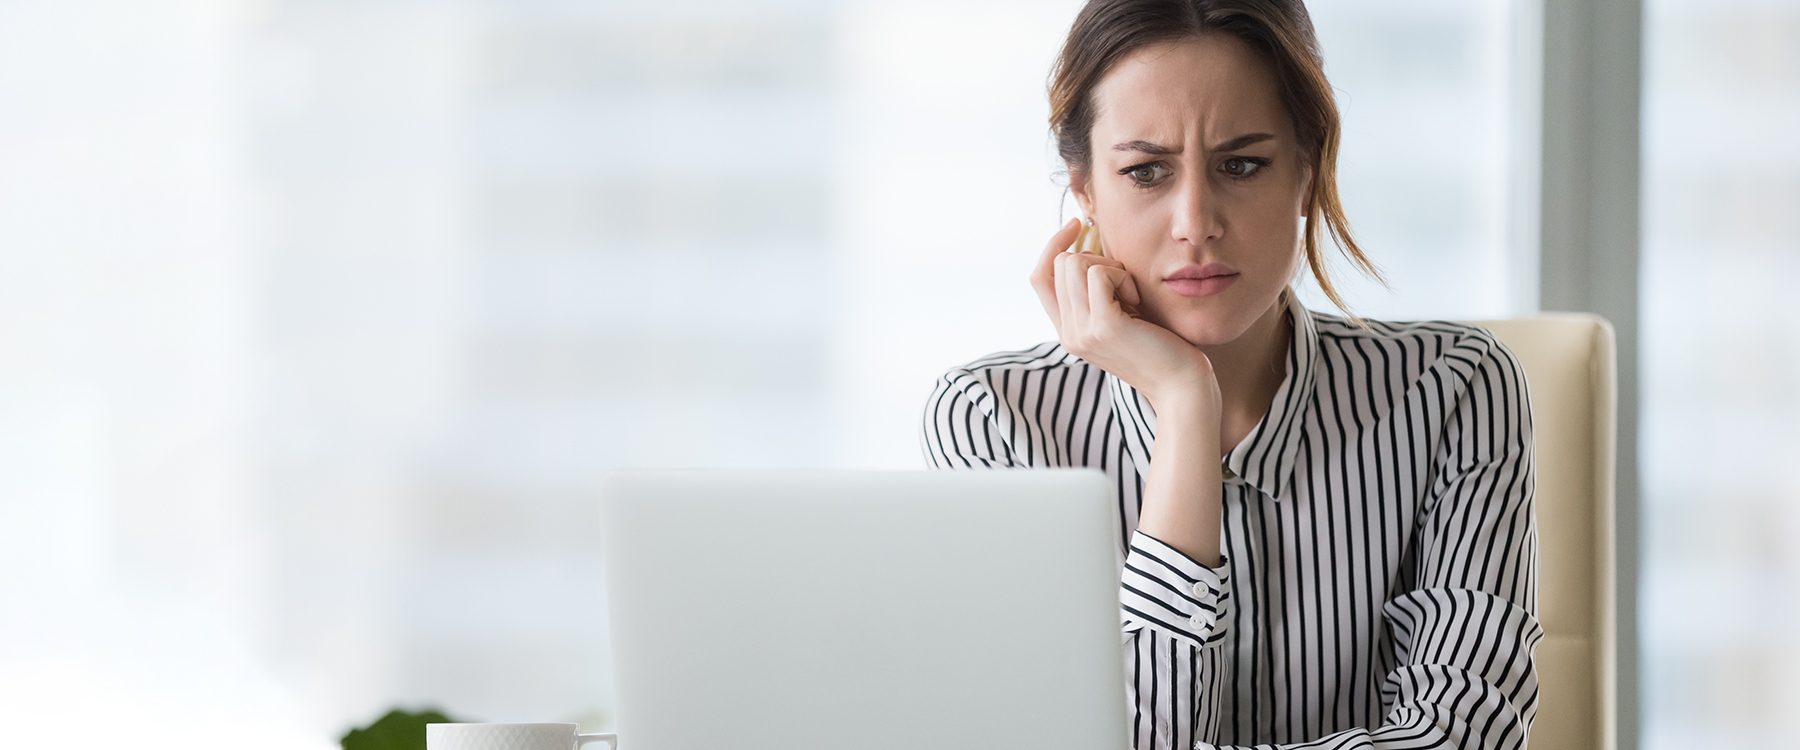 Woman disgruntled looking at old website design on laptop